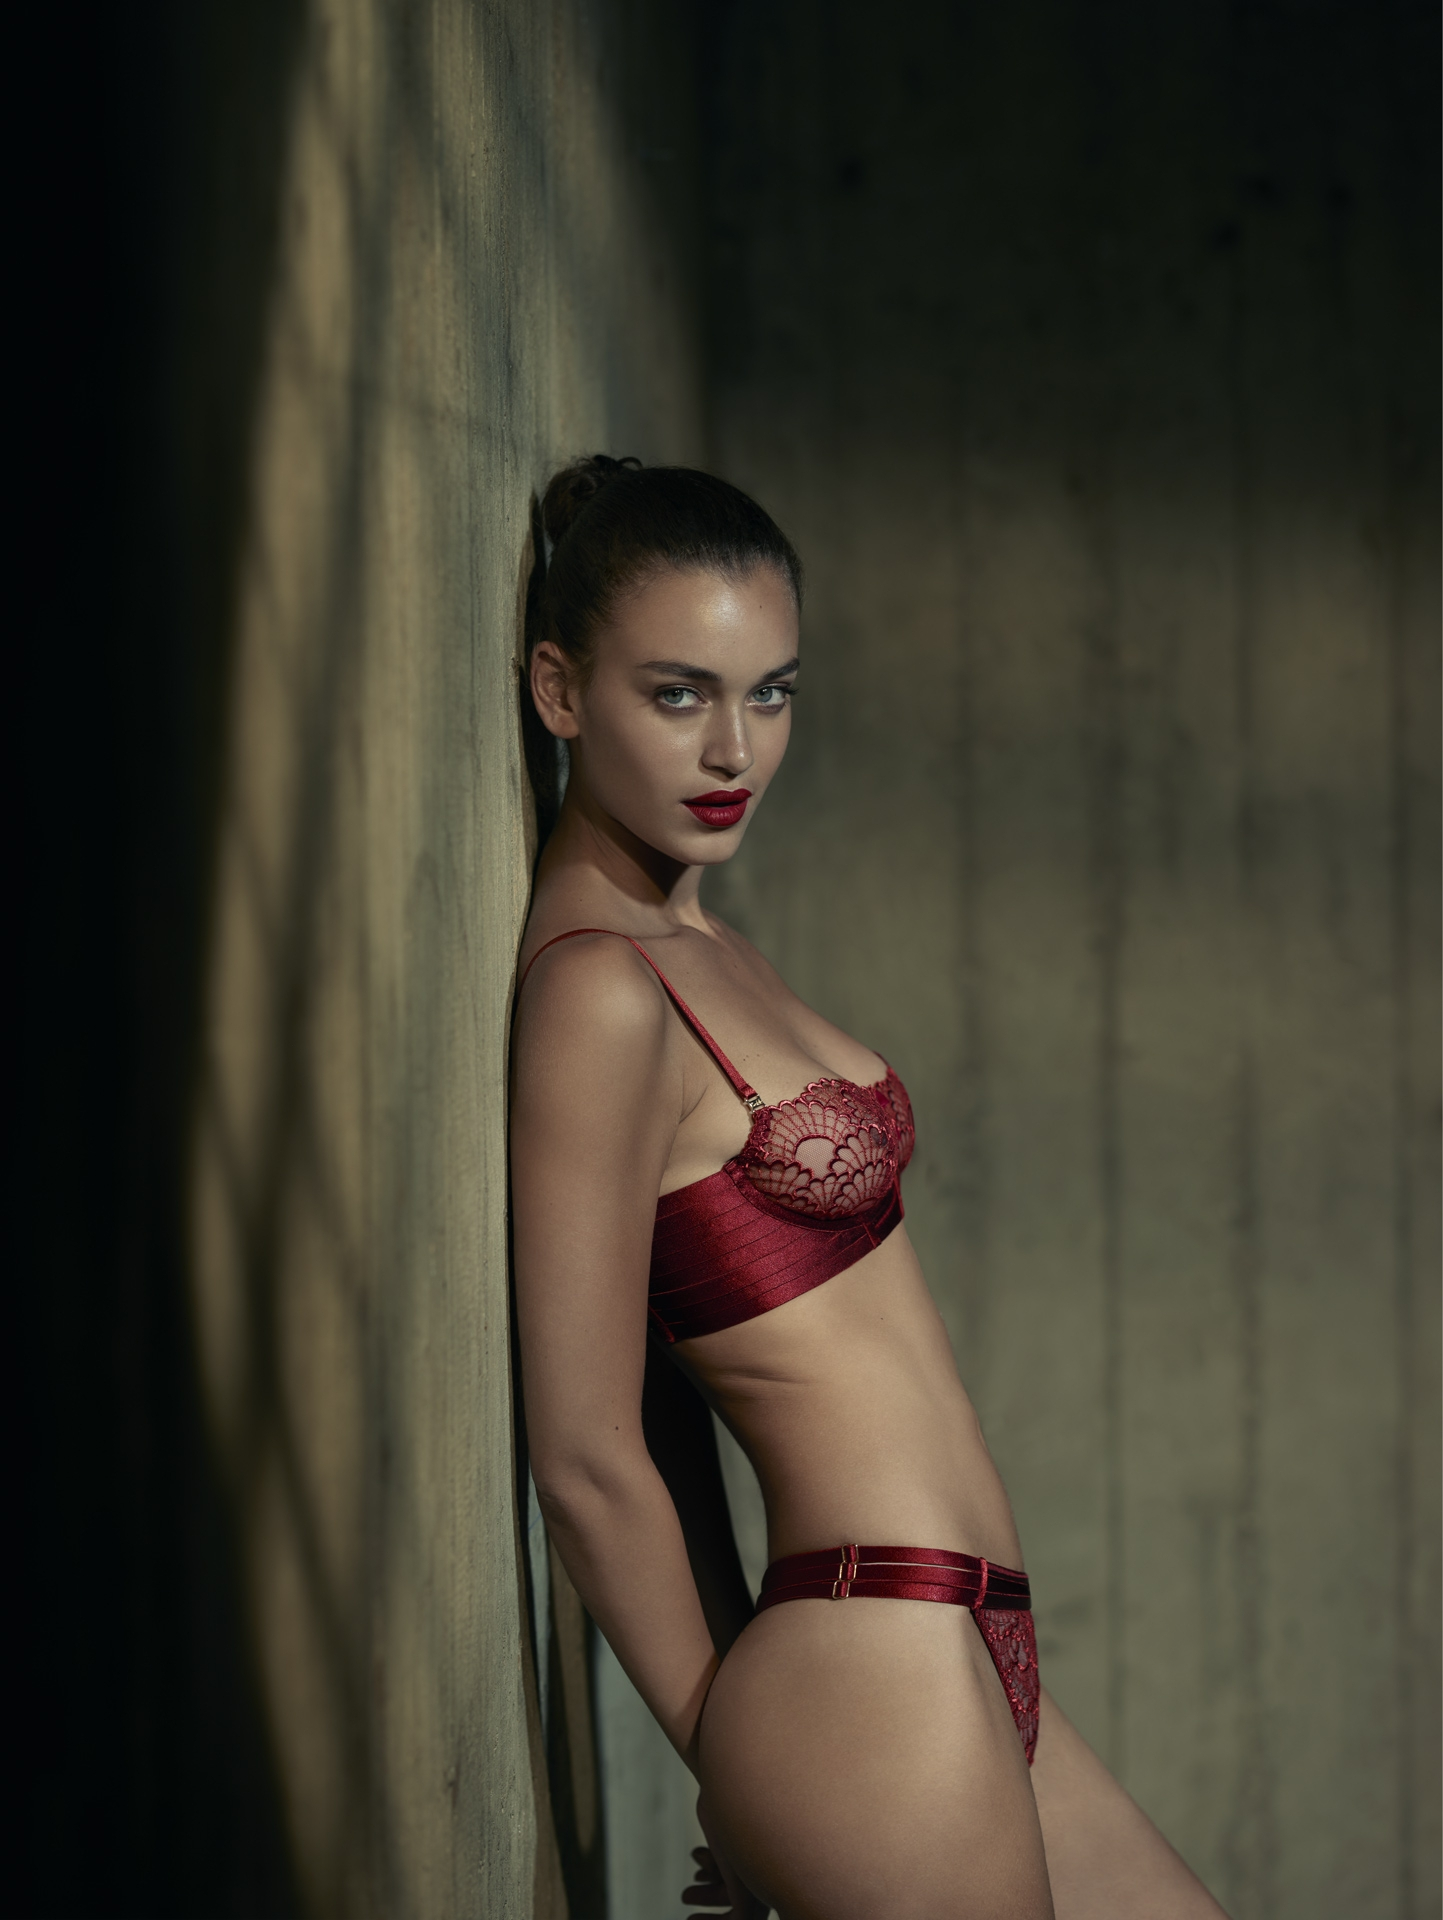 cinema movie light burn red penitentiary jail concrete bordelle lingerie frederic mercier photographer one color